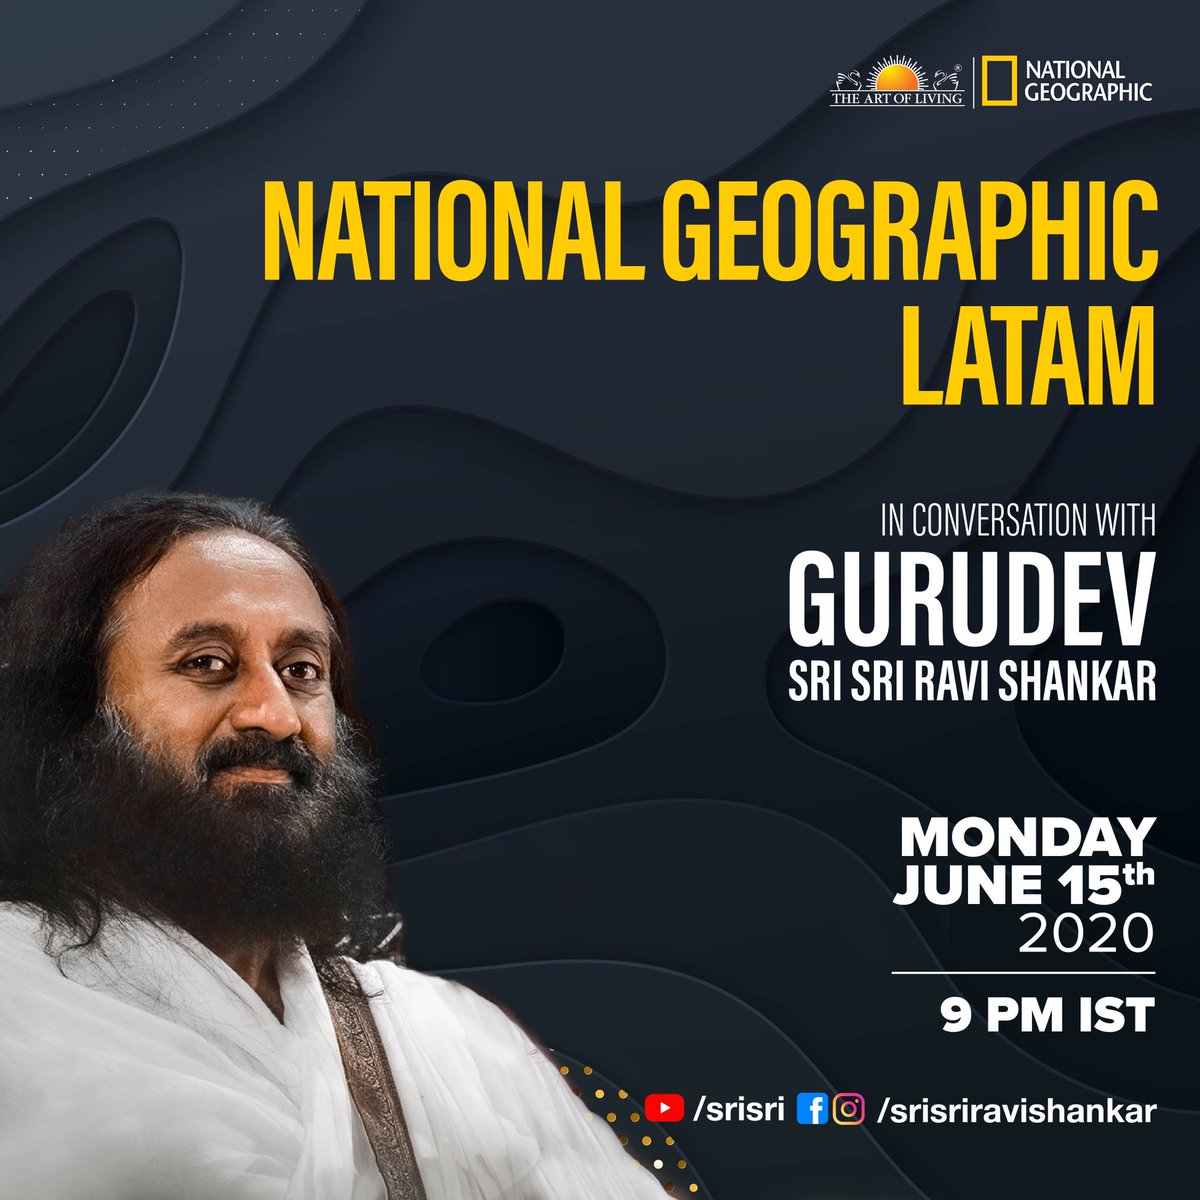 Nature is rejoicing in these times of #coronavirus . @NatGeo Latam in conversation with Gurudev @SriSri on 15th June at 9pm IST.  Watch it live on :- https://t.co/zM74XVsx0Q https://t.co/LUA2GQ3kUE https://t.co/0HwQeRE71B  #COVID19 #natgeo #artofliving https://t.co/xsVxHvS9ab